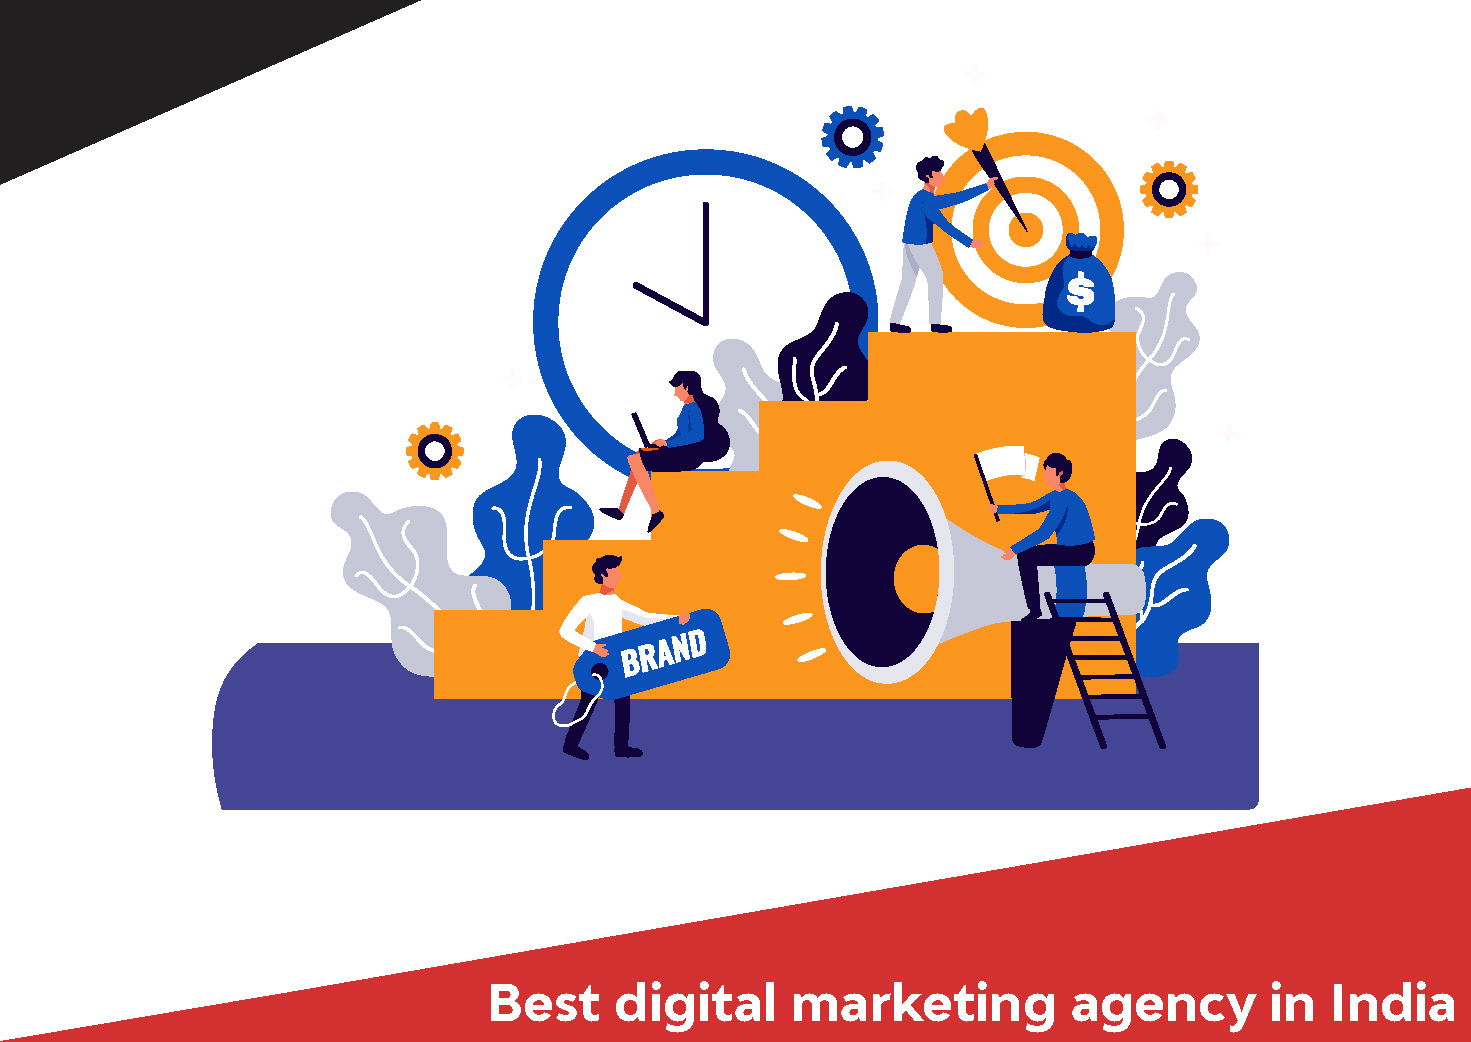 best-digital-marketing-agency-in-india-01-1.jpg